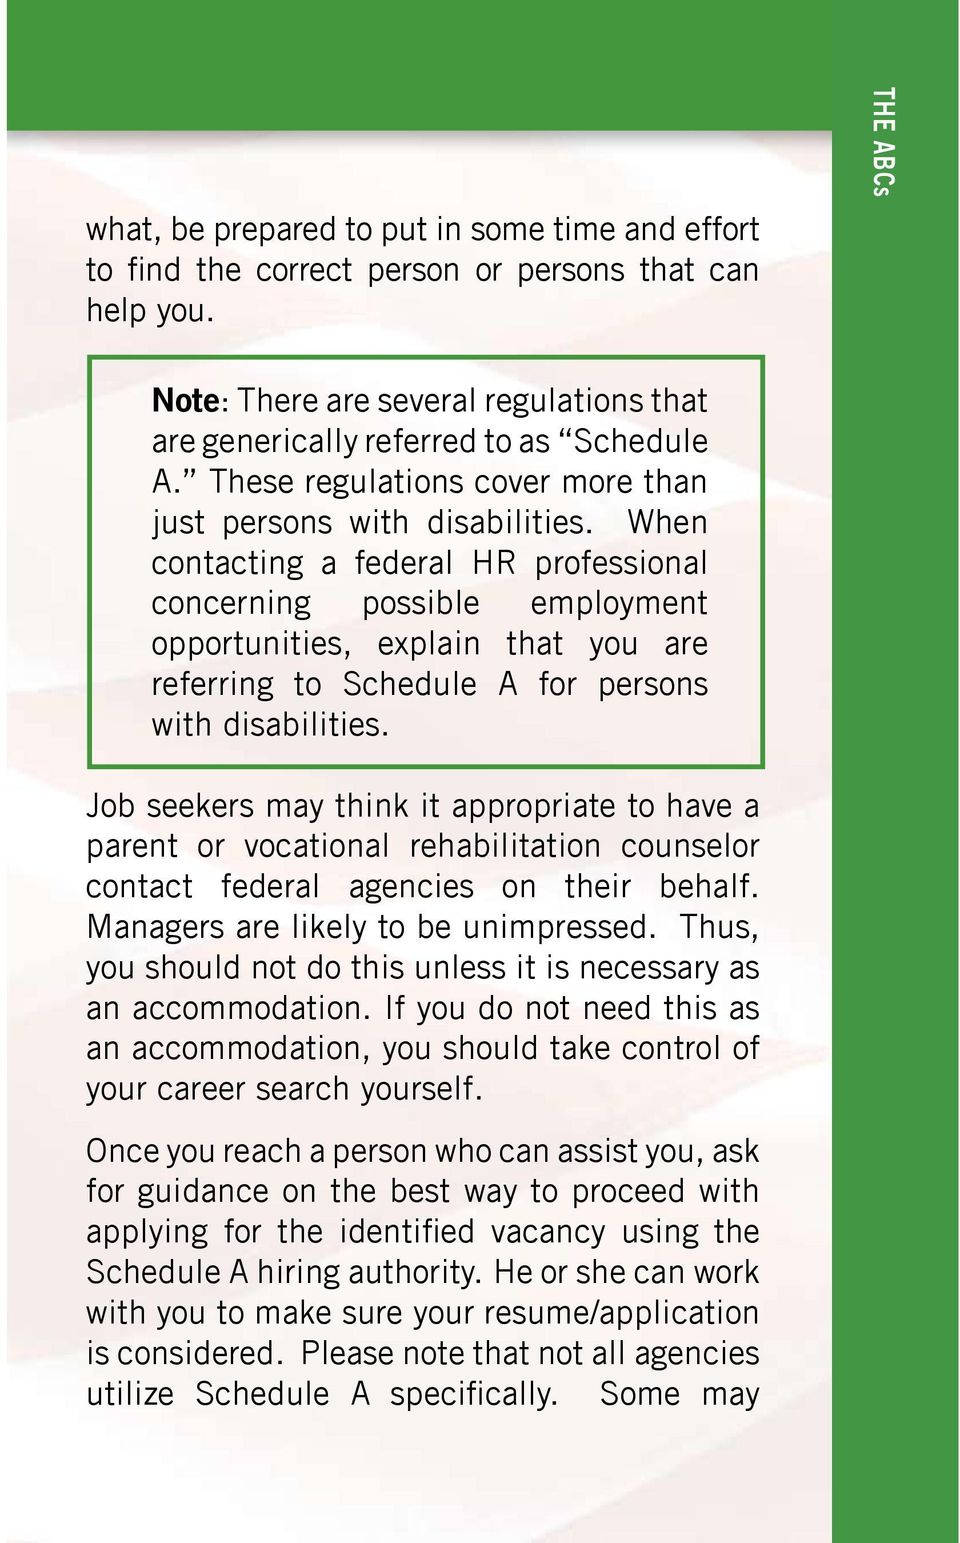 When contacting a federal HR professional concerning possible employment opportunities, explain that you are referring to Schedule A for persons with disabilities.